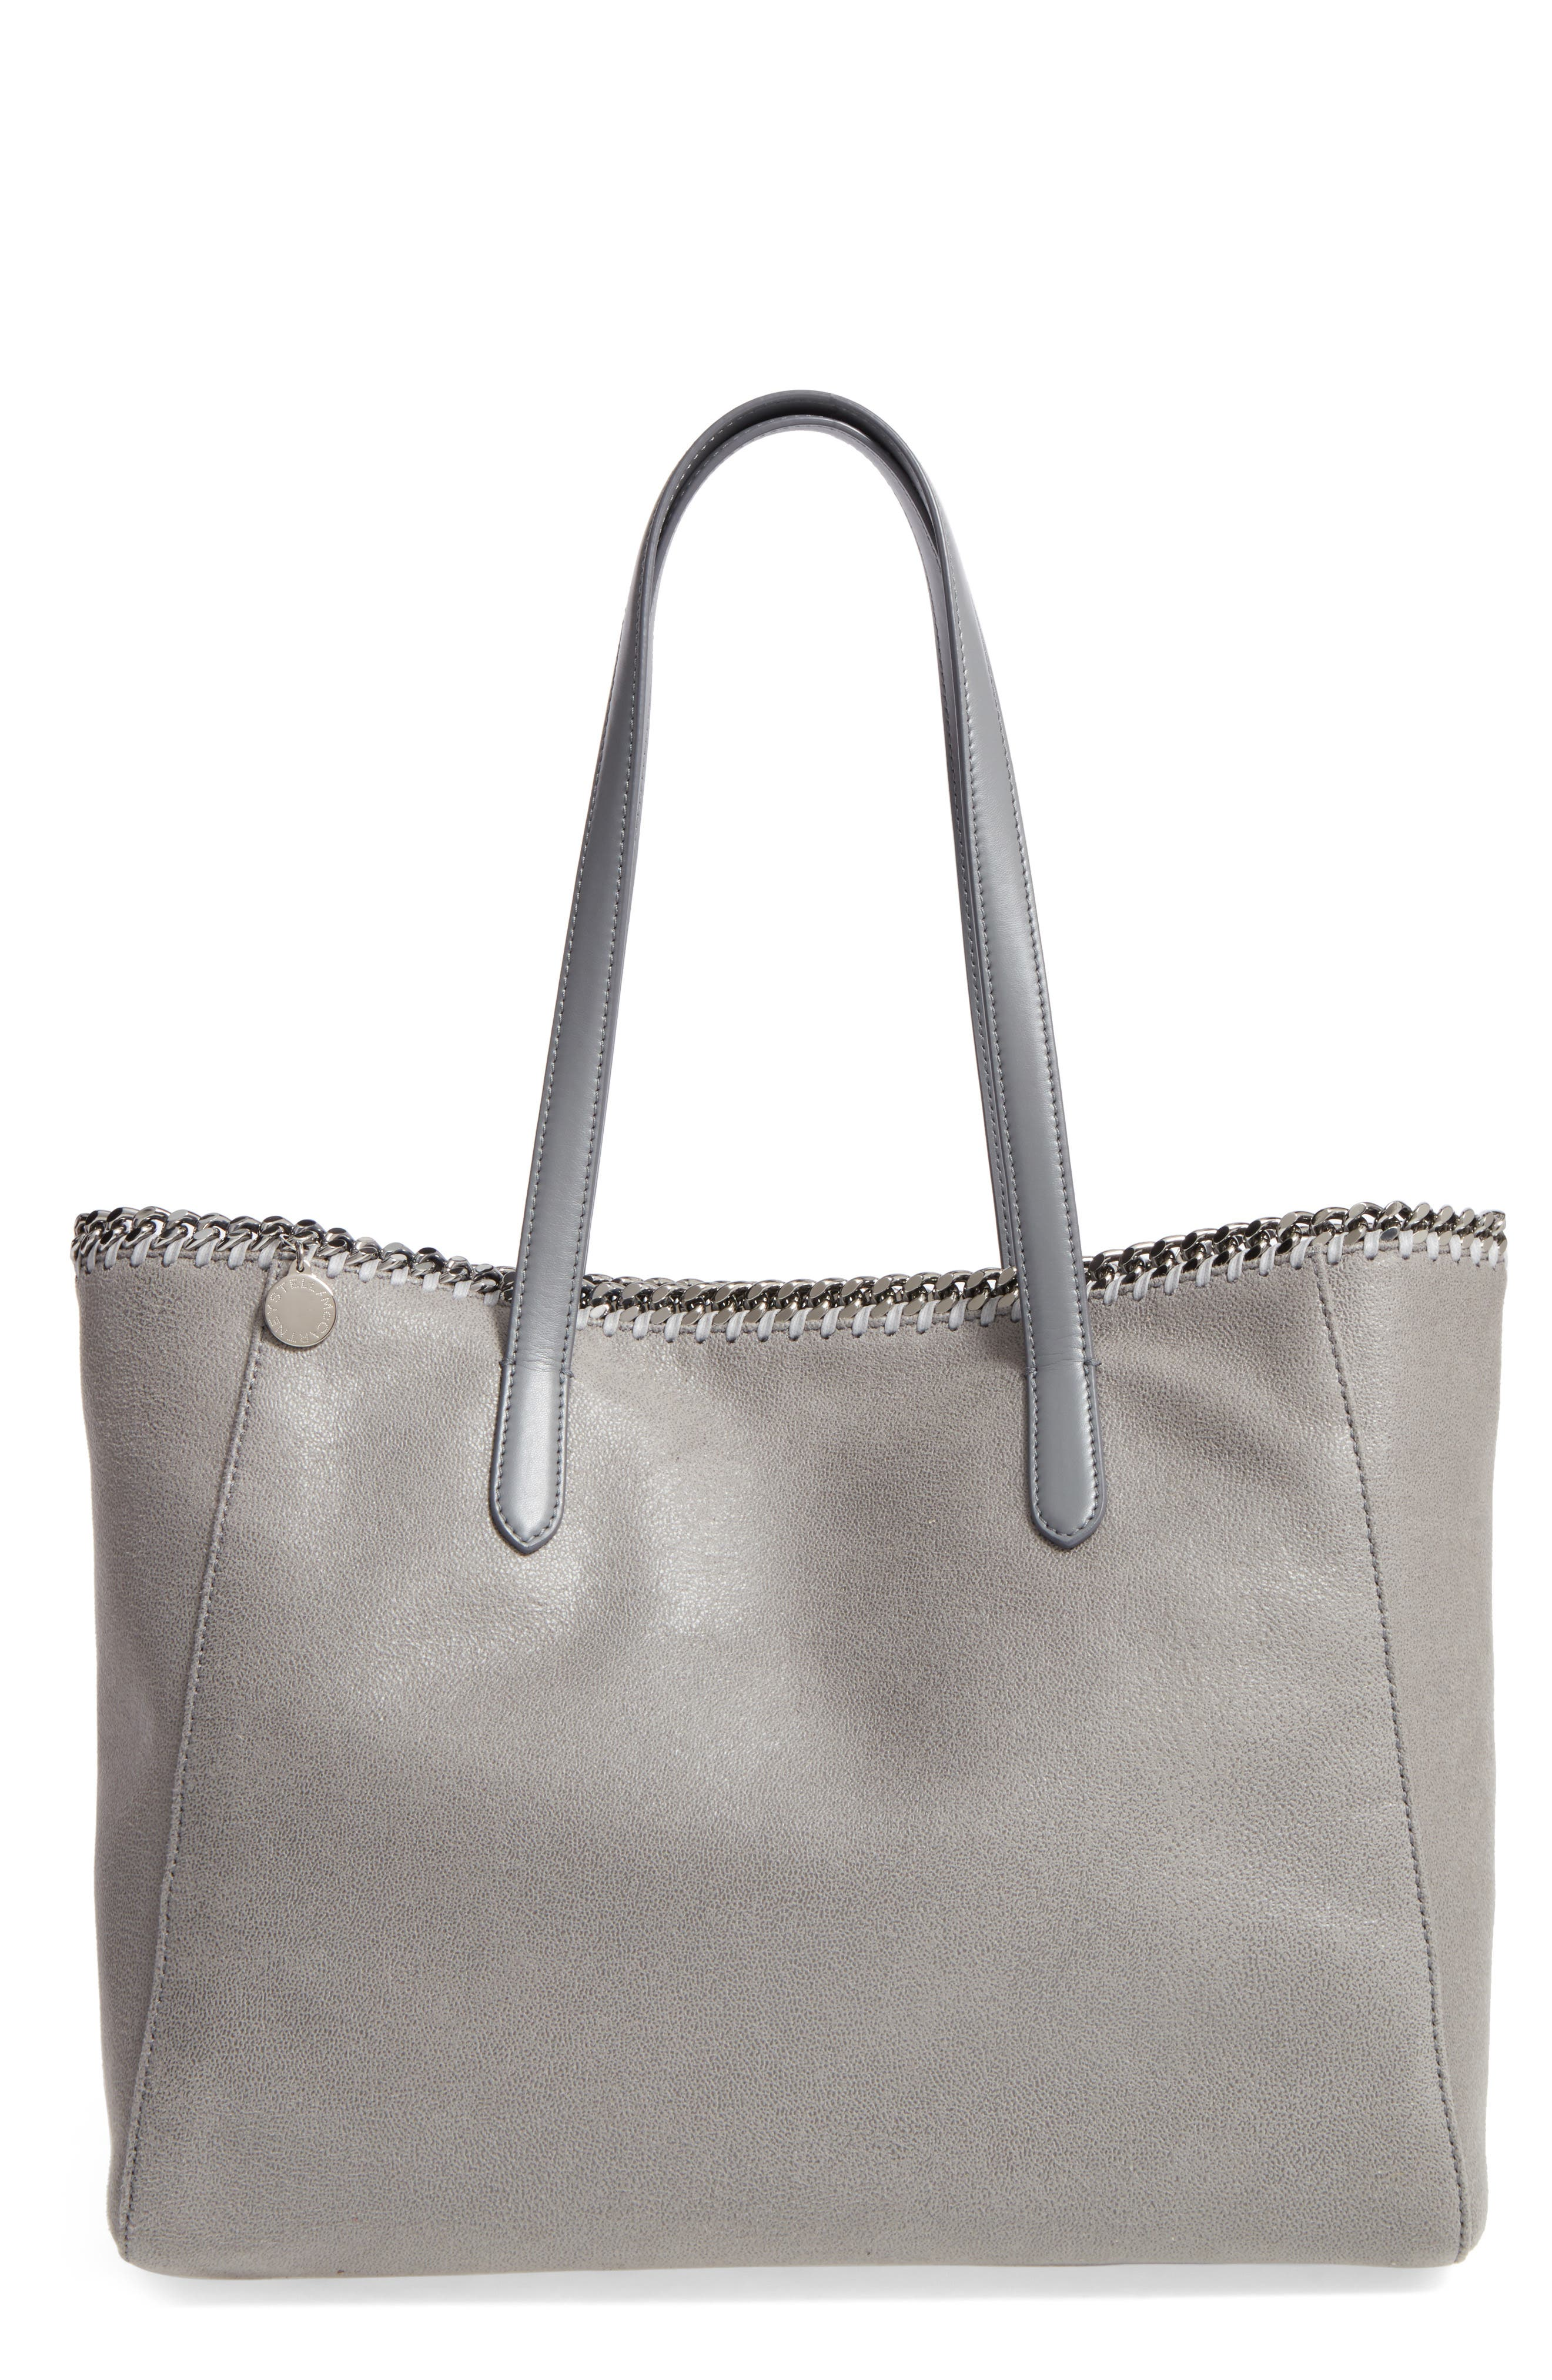 'Falabella - Shaggy Deer' Faux Leather Tote,                             Main thumbnail 1, color,                             Light Grey